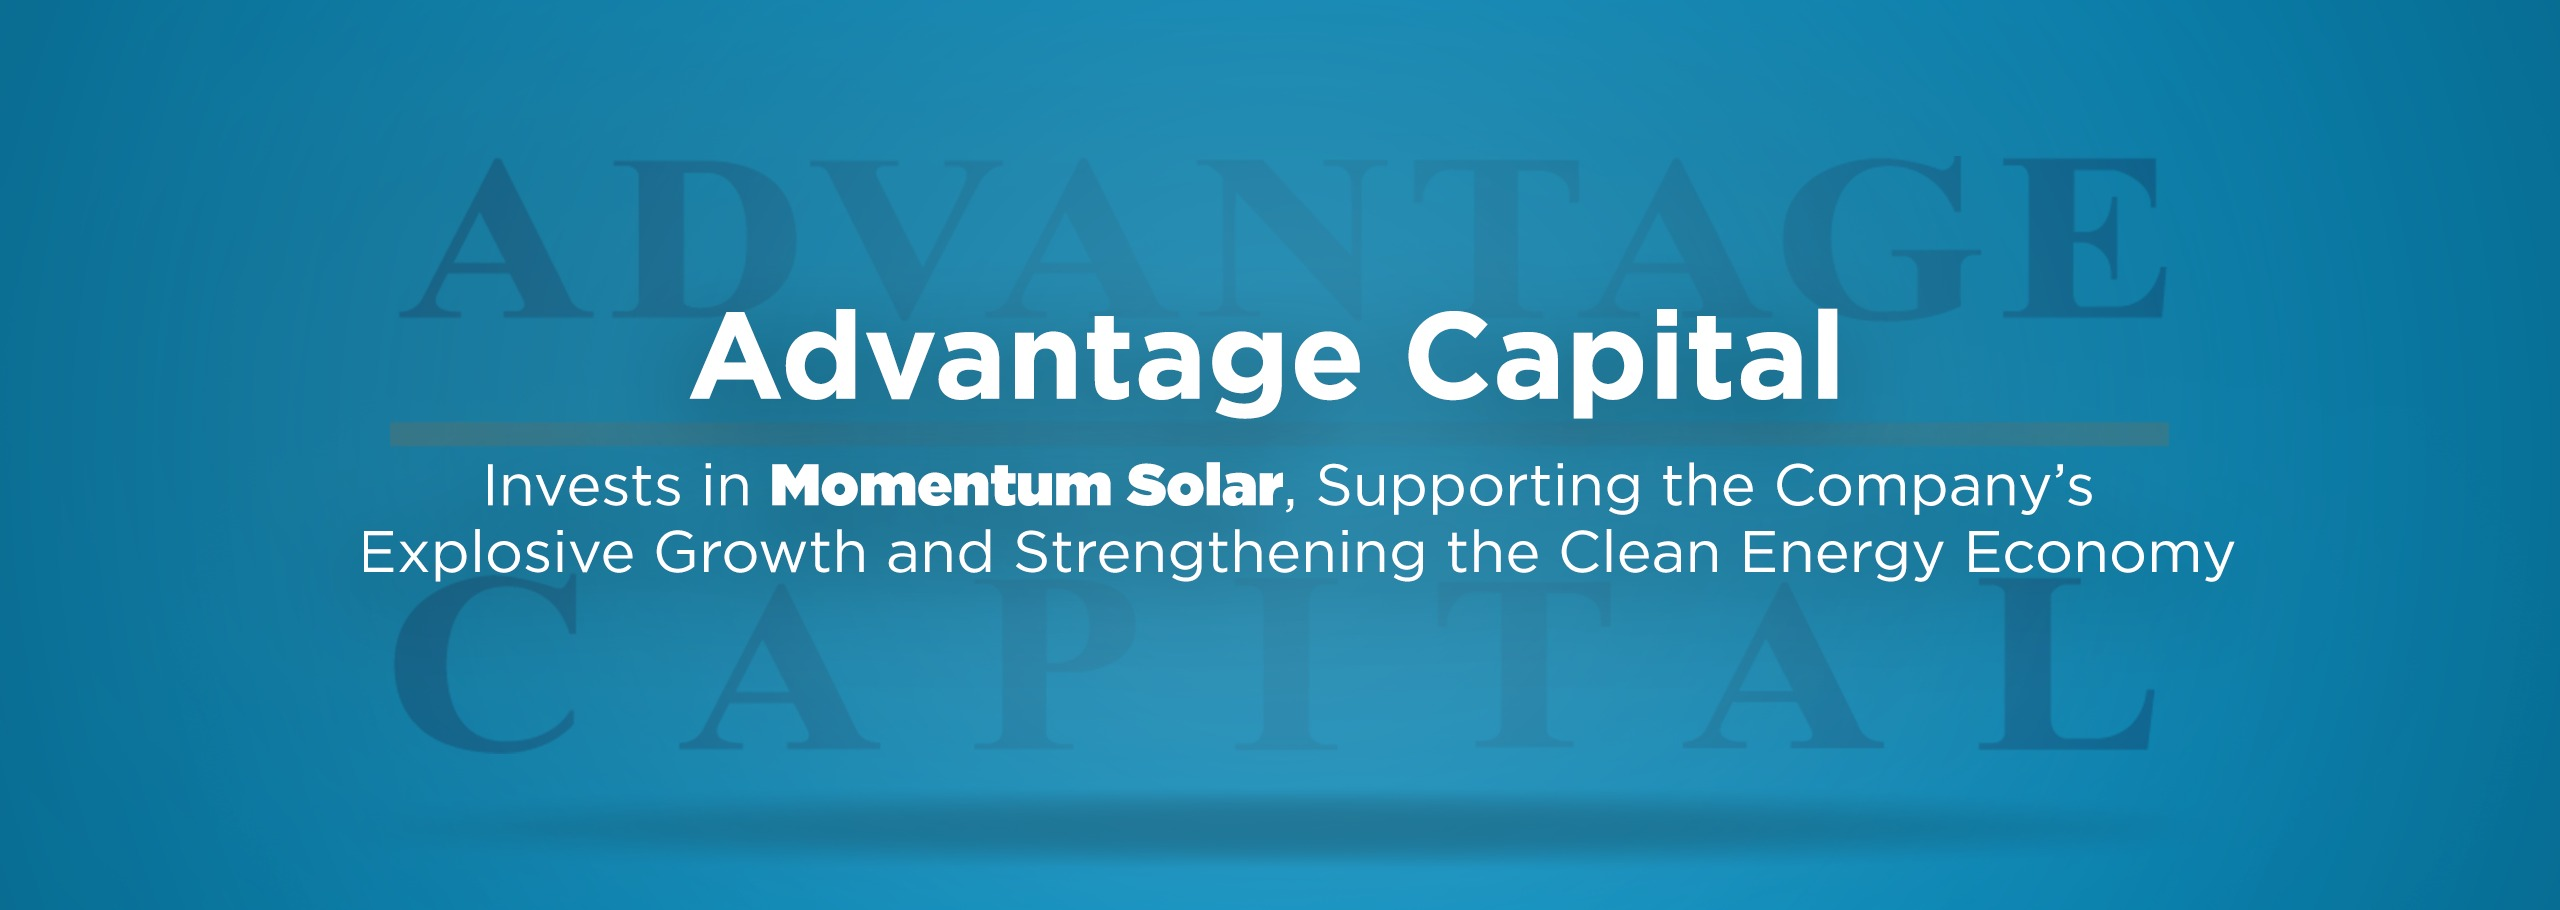 Advantage Capital Invests in Momentum Solar, Supporting the Company's Explosive Growth and Strengthening the Clean Energy Economy